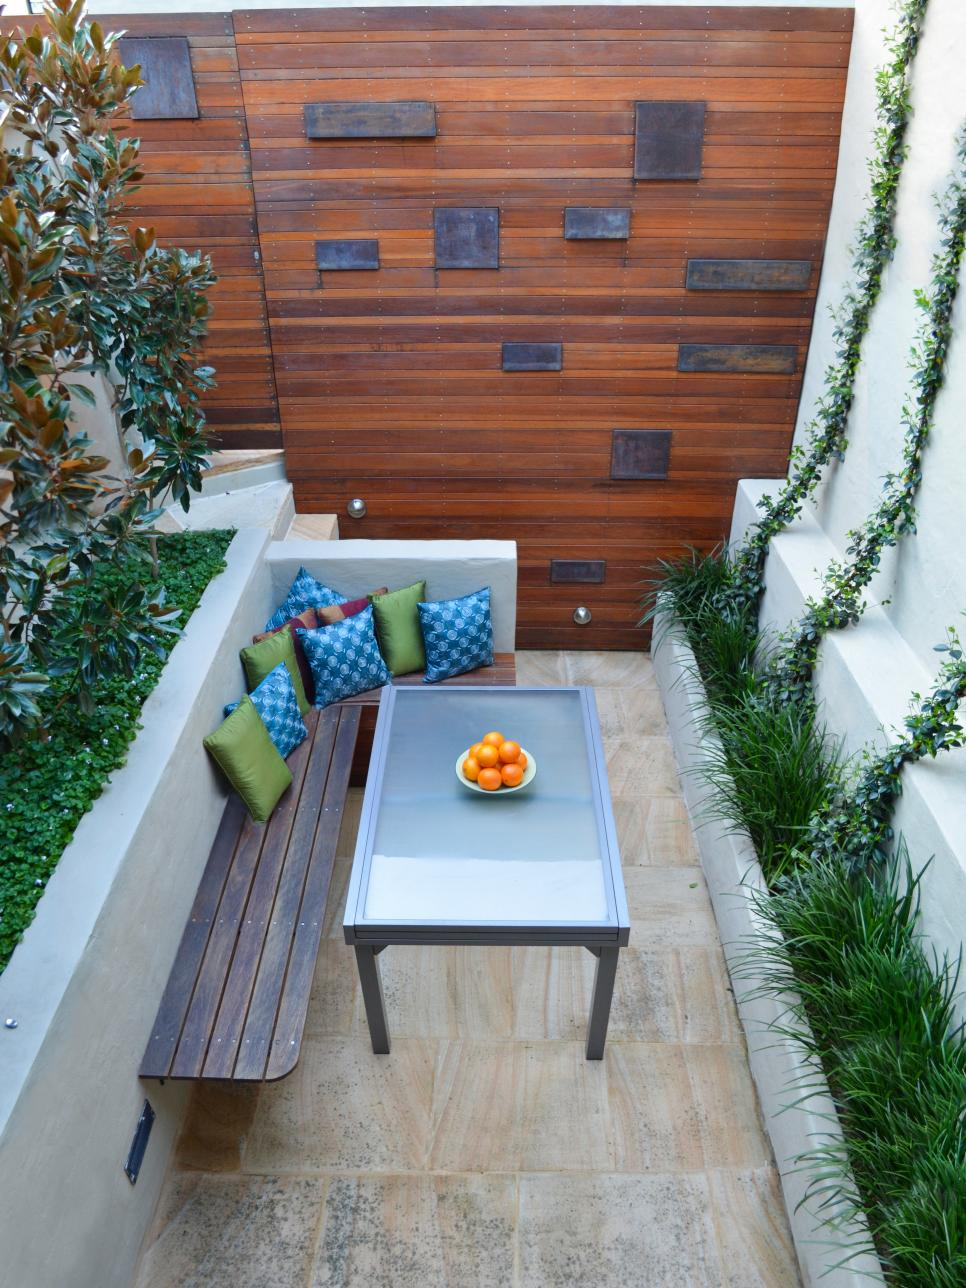 Pictures and tips for small patios hgtv for Pictures of decorated small patios